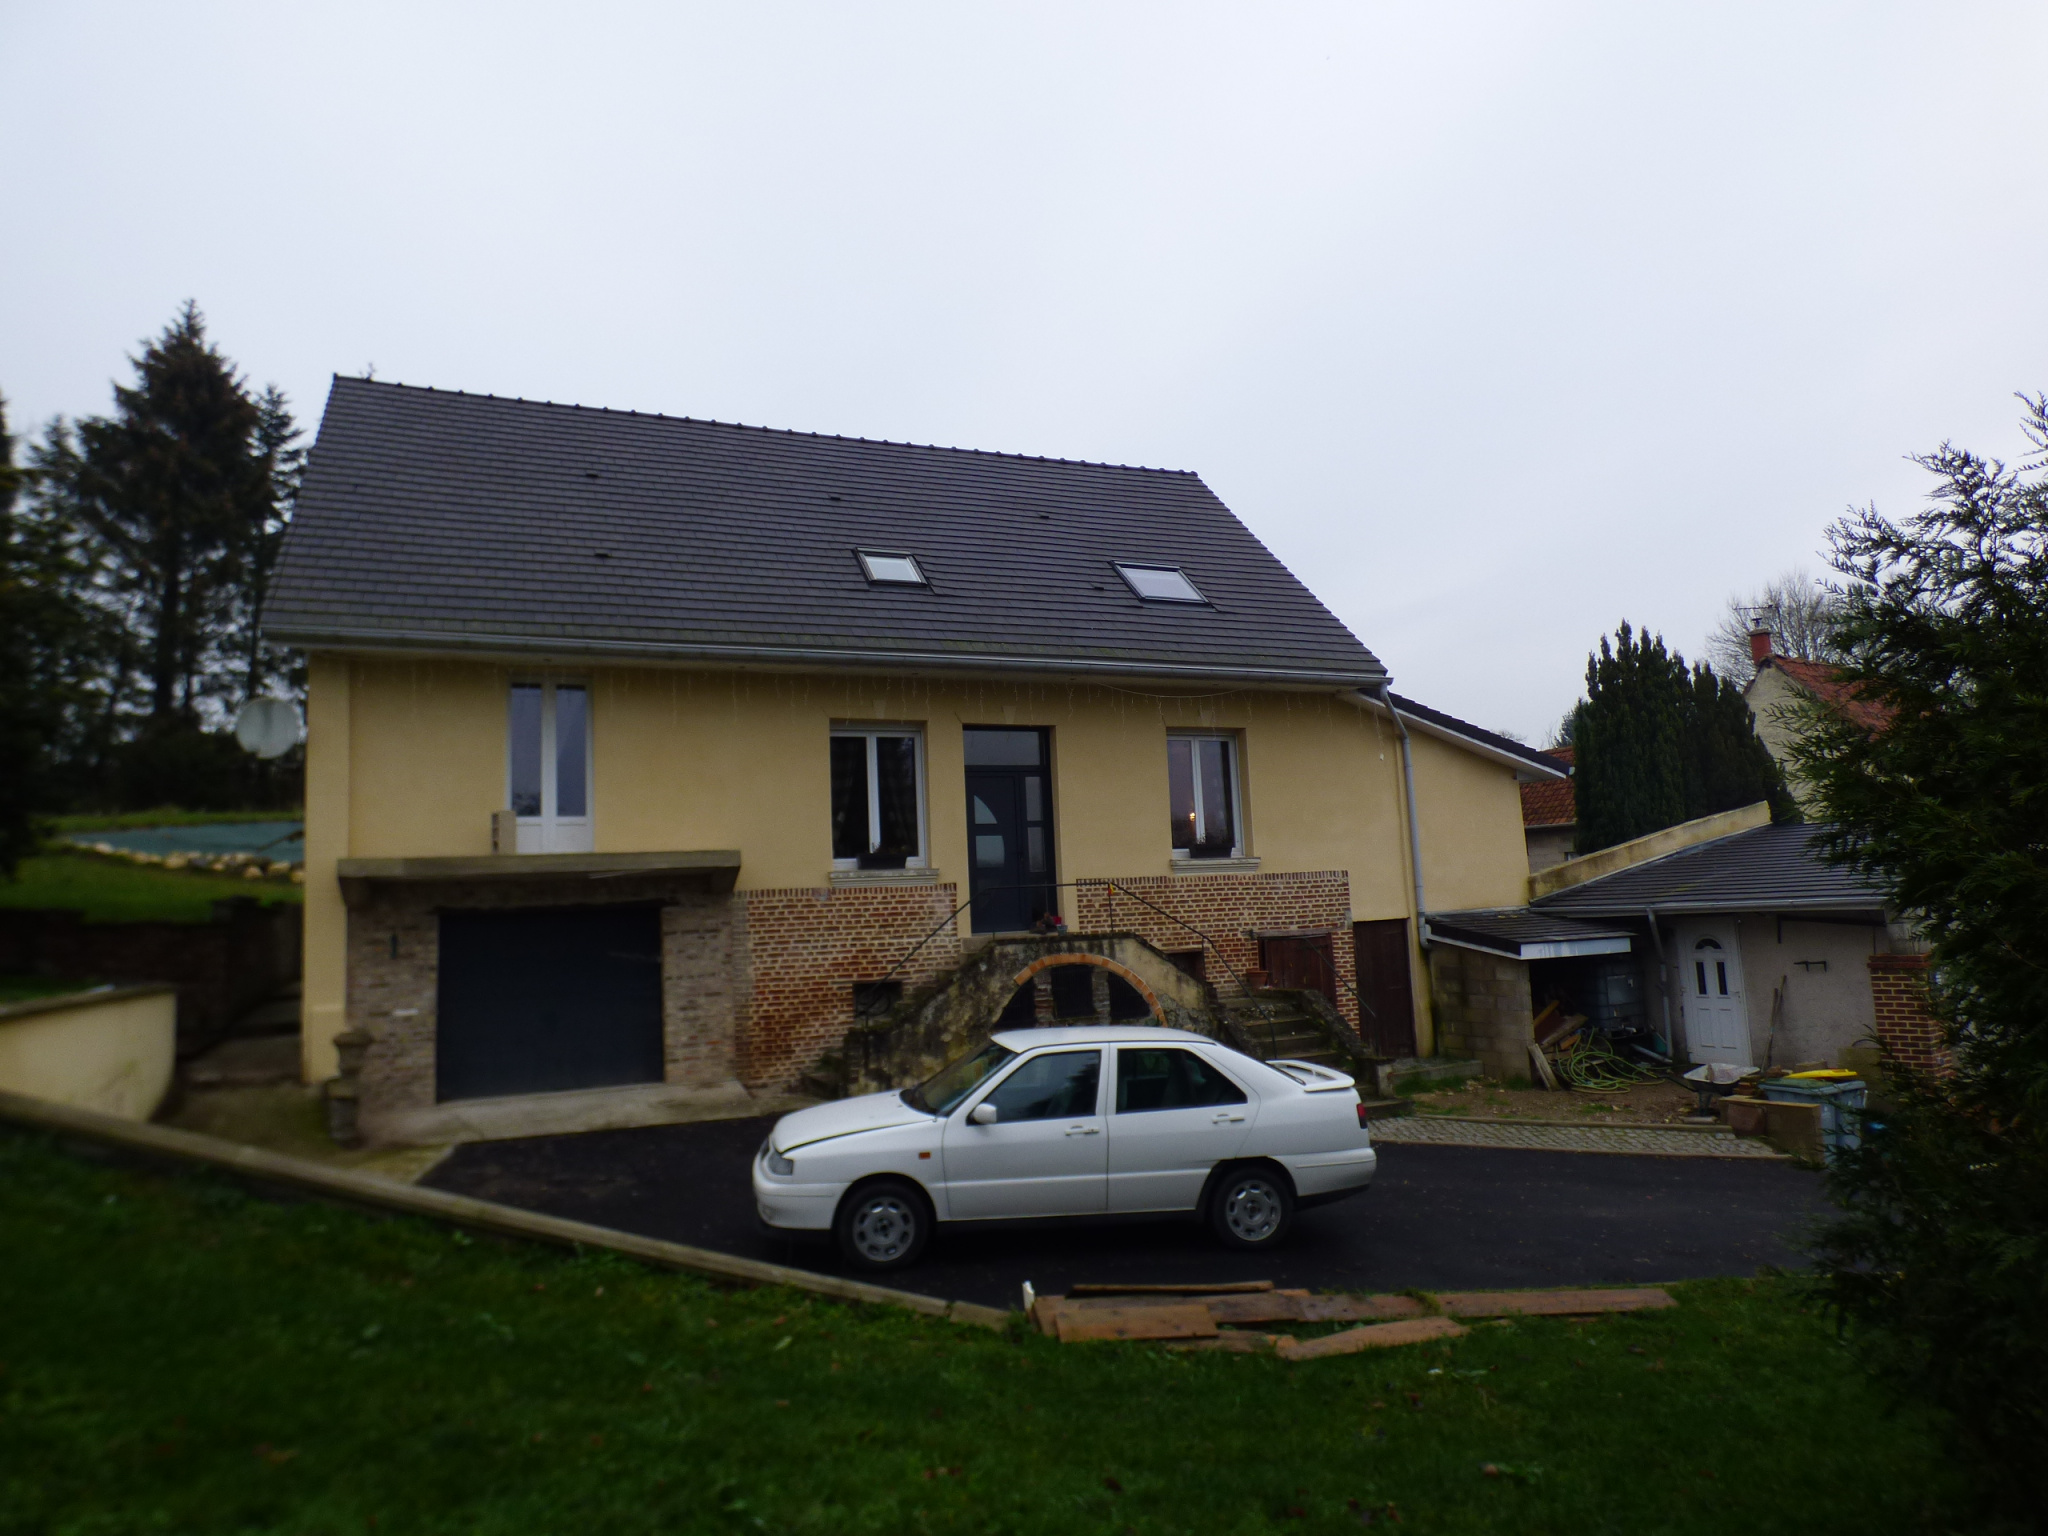 EXCLUSIF PERNOIS MAISON 6 CHAMBRES